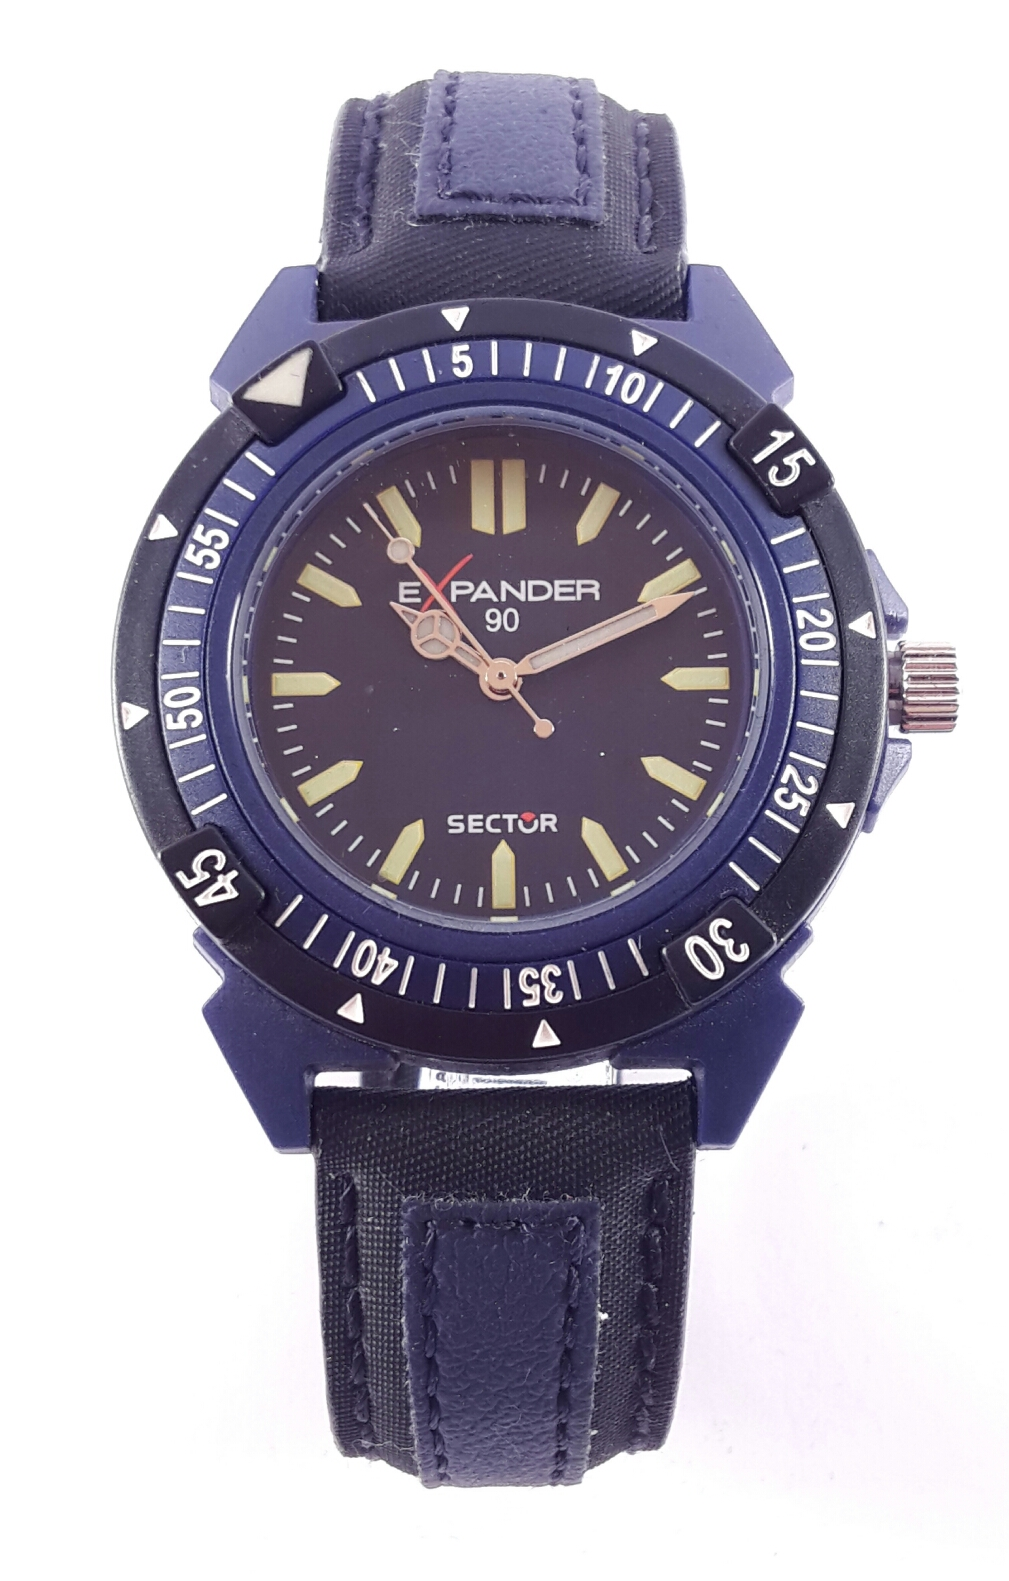 OROLOGIO SECTOR EXP 90 ref R3251197035